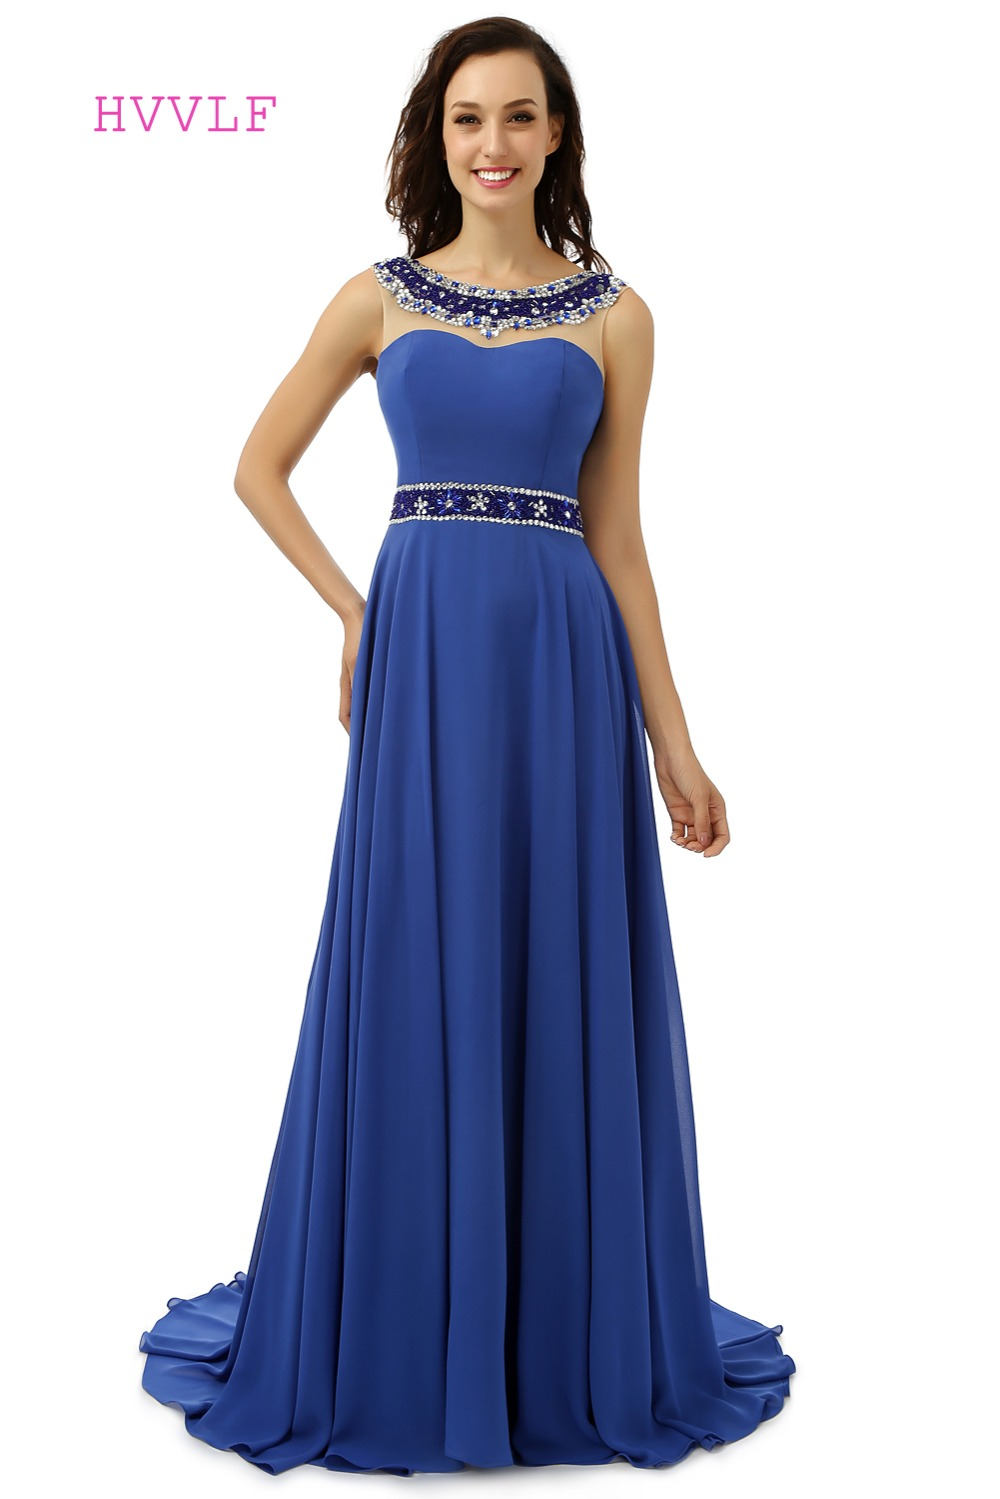 Royal Blue Robe De Soiree 2019 A-line Scoop Chiffon Beaded Crystals Women Backless Long   Prom     Dresses     Prom   Gown Evening   Dresses